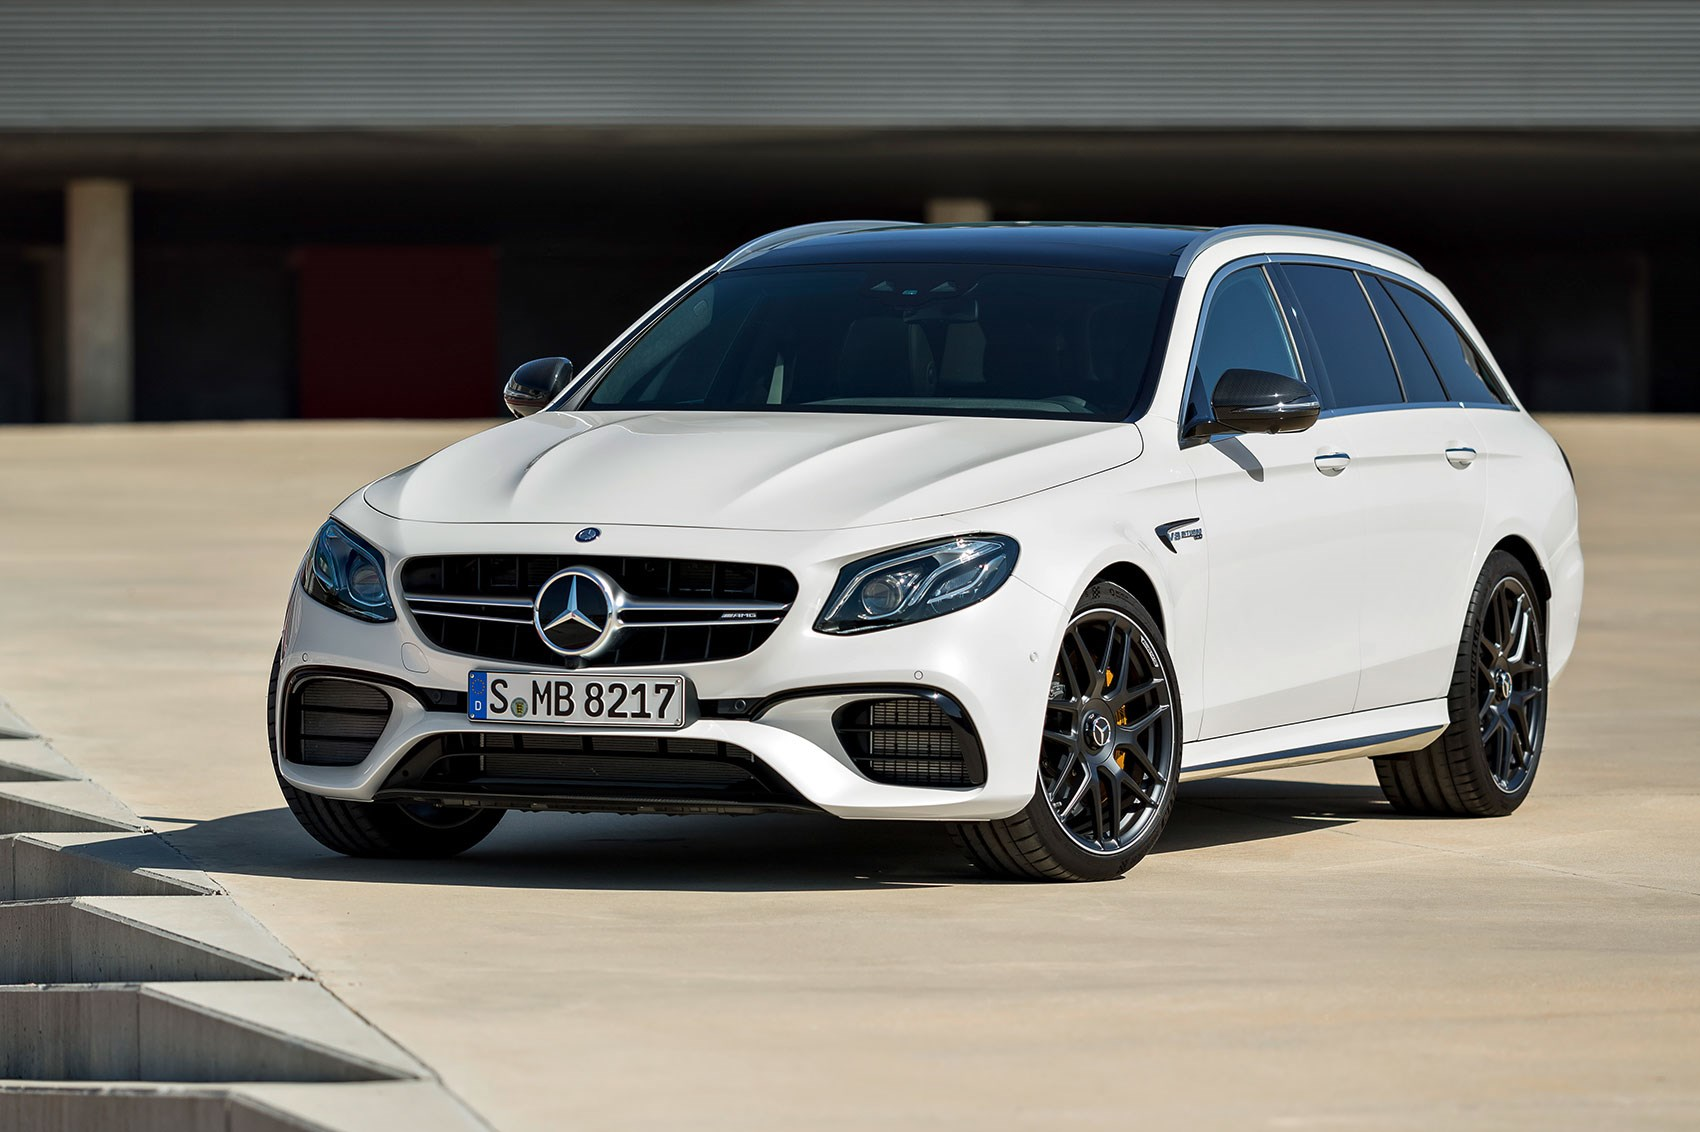 2017 Amg E63 Wagon | Best new cars for 2018